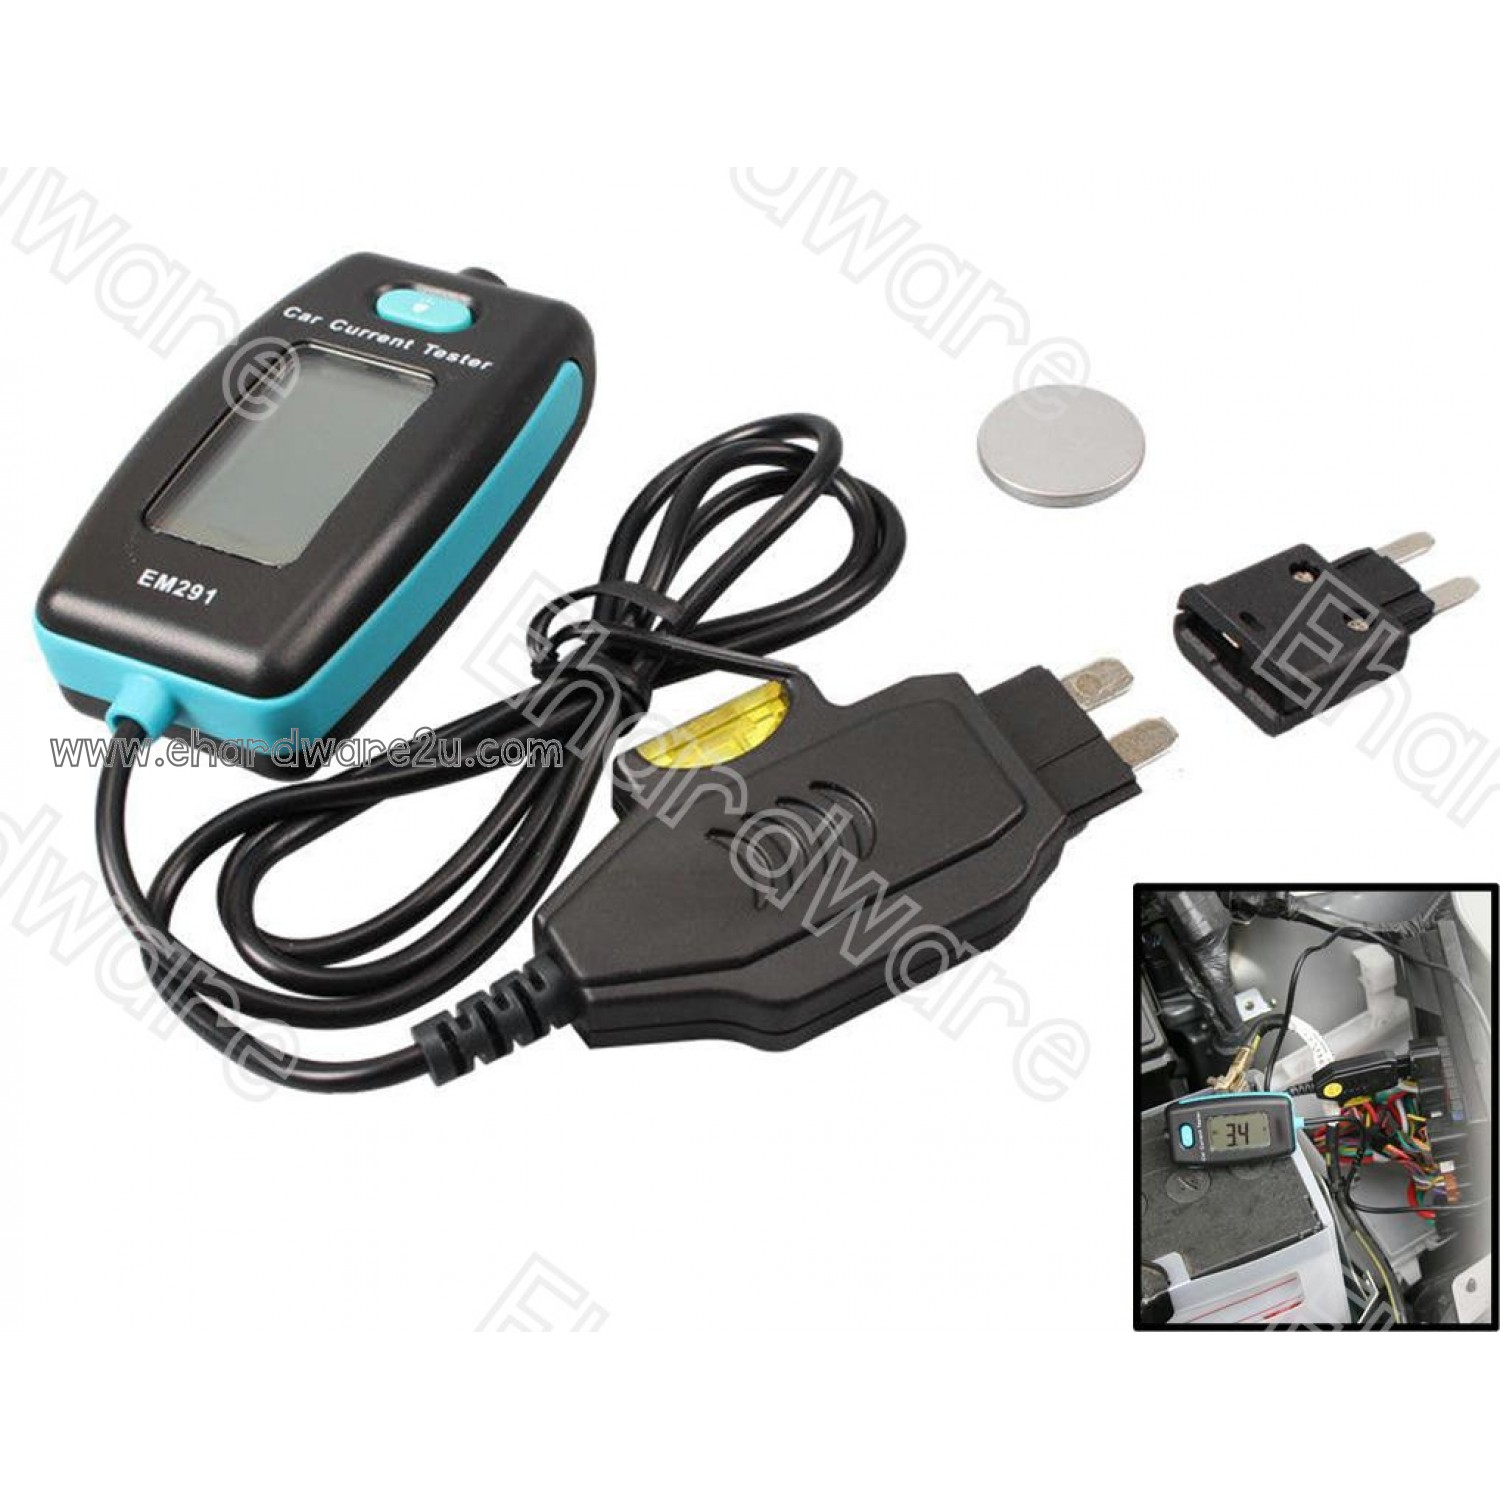 hight resolution of car fuse box tester